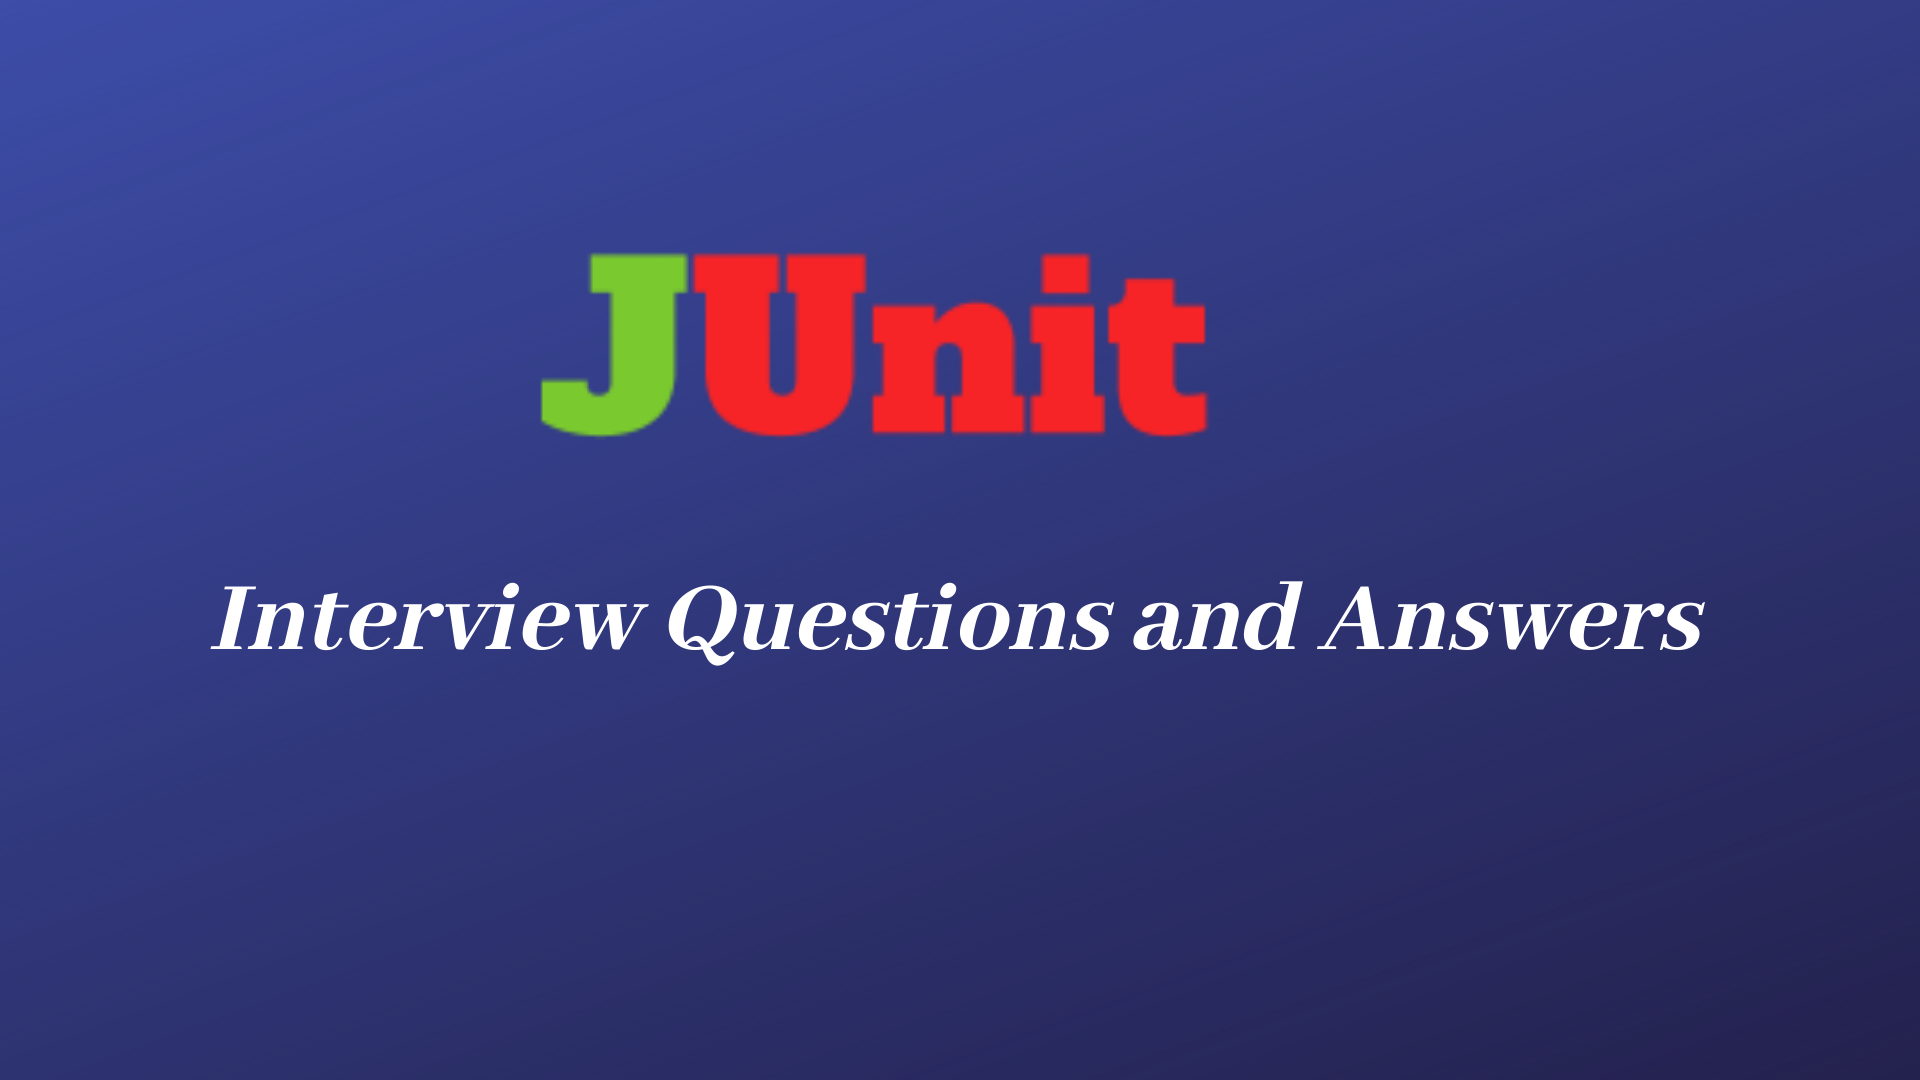 Junit Interview Questions